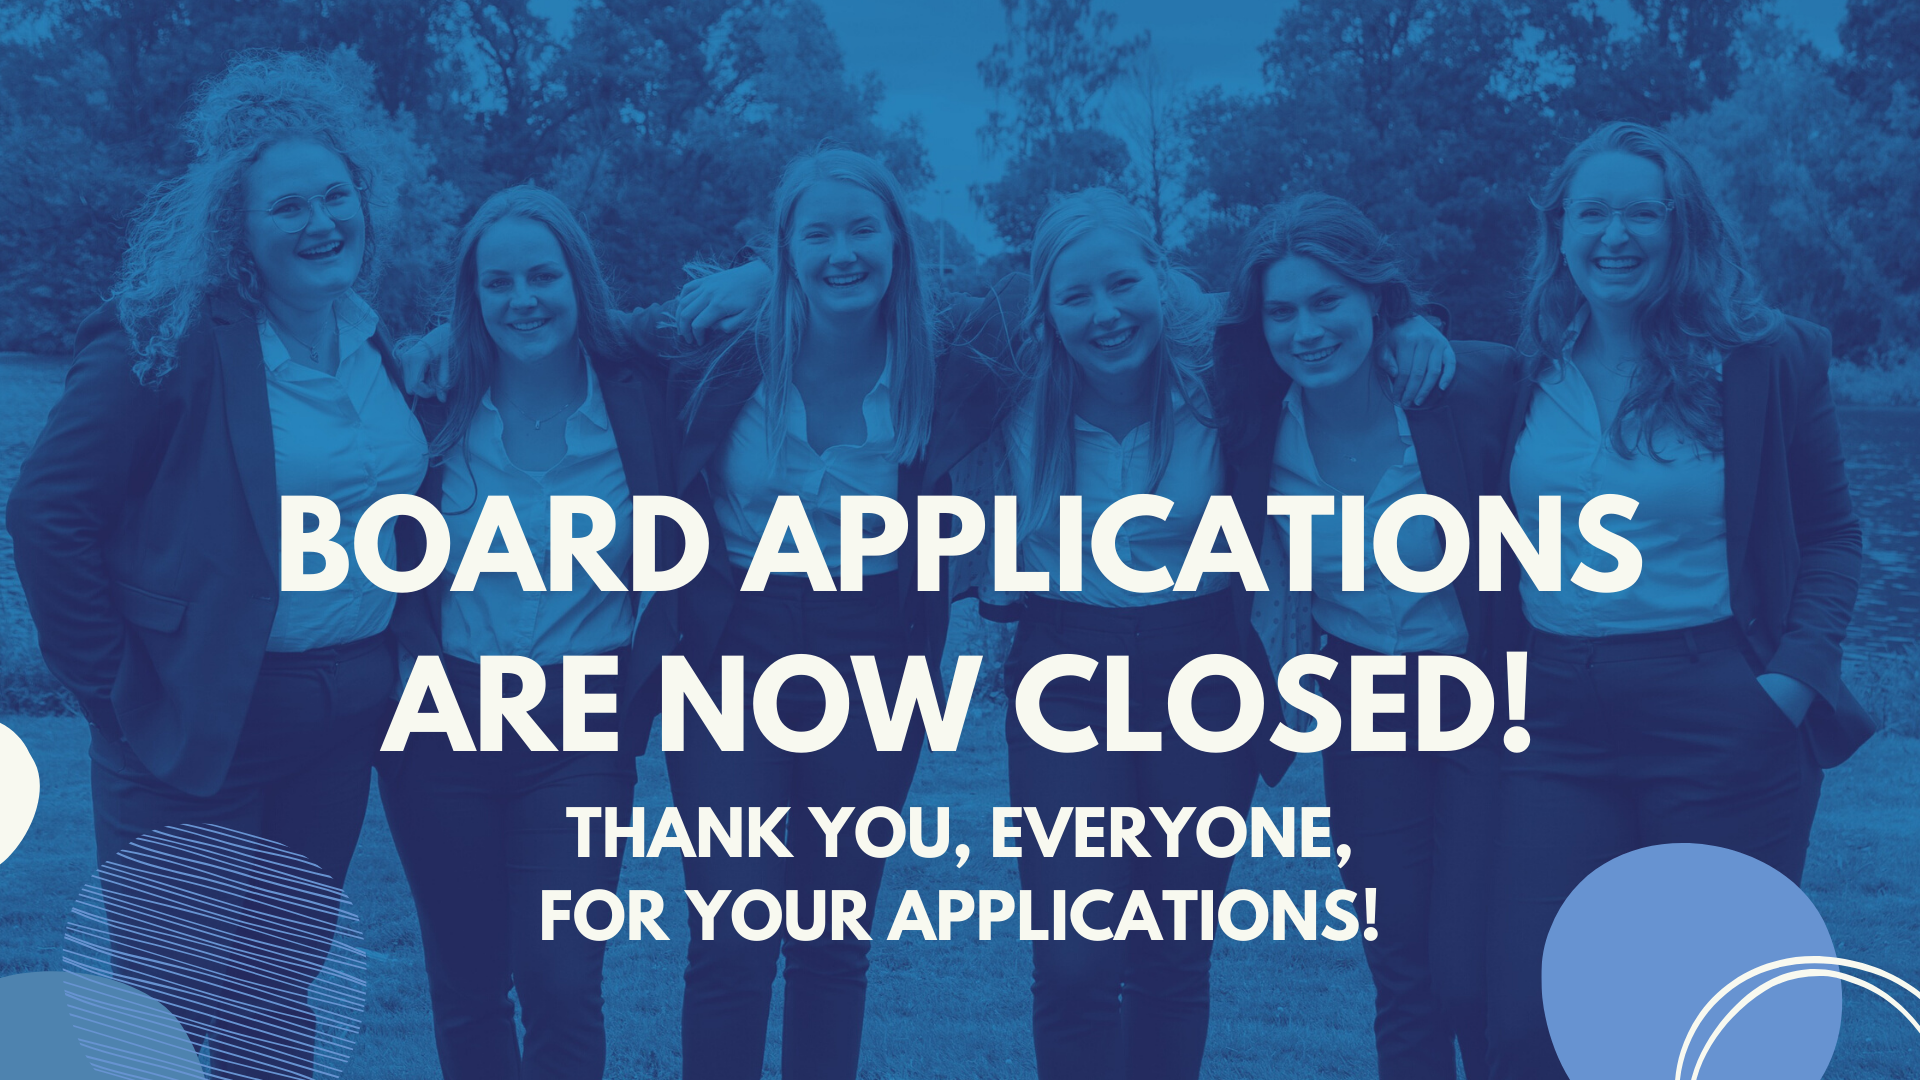 Board applications are closed!